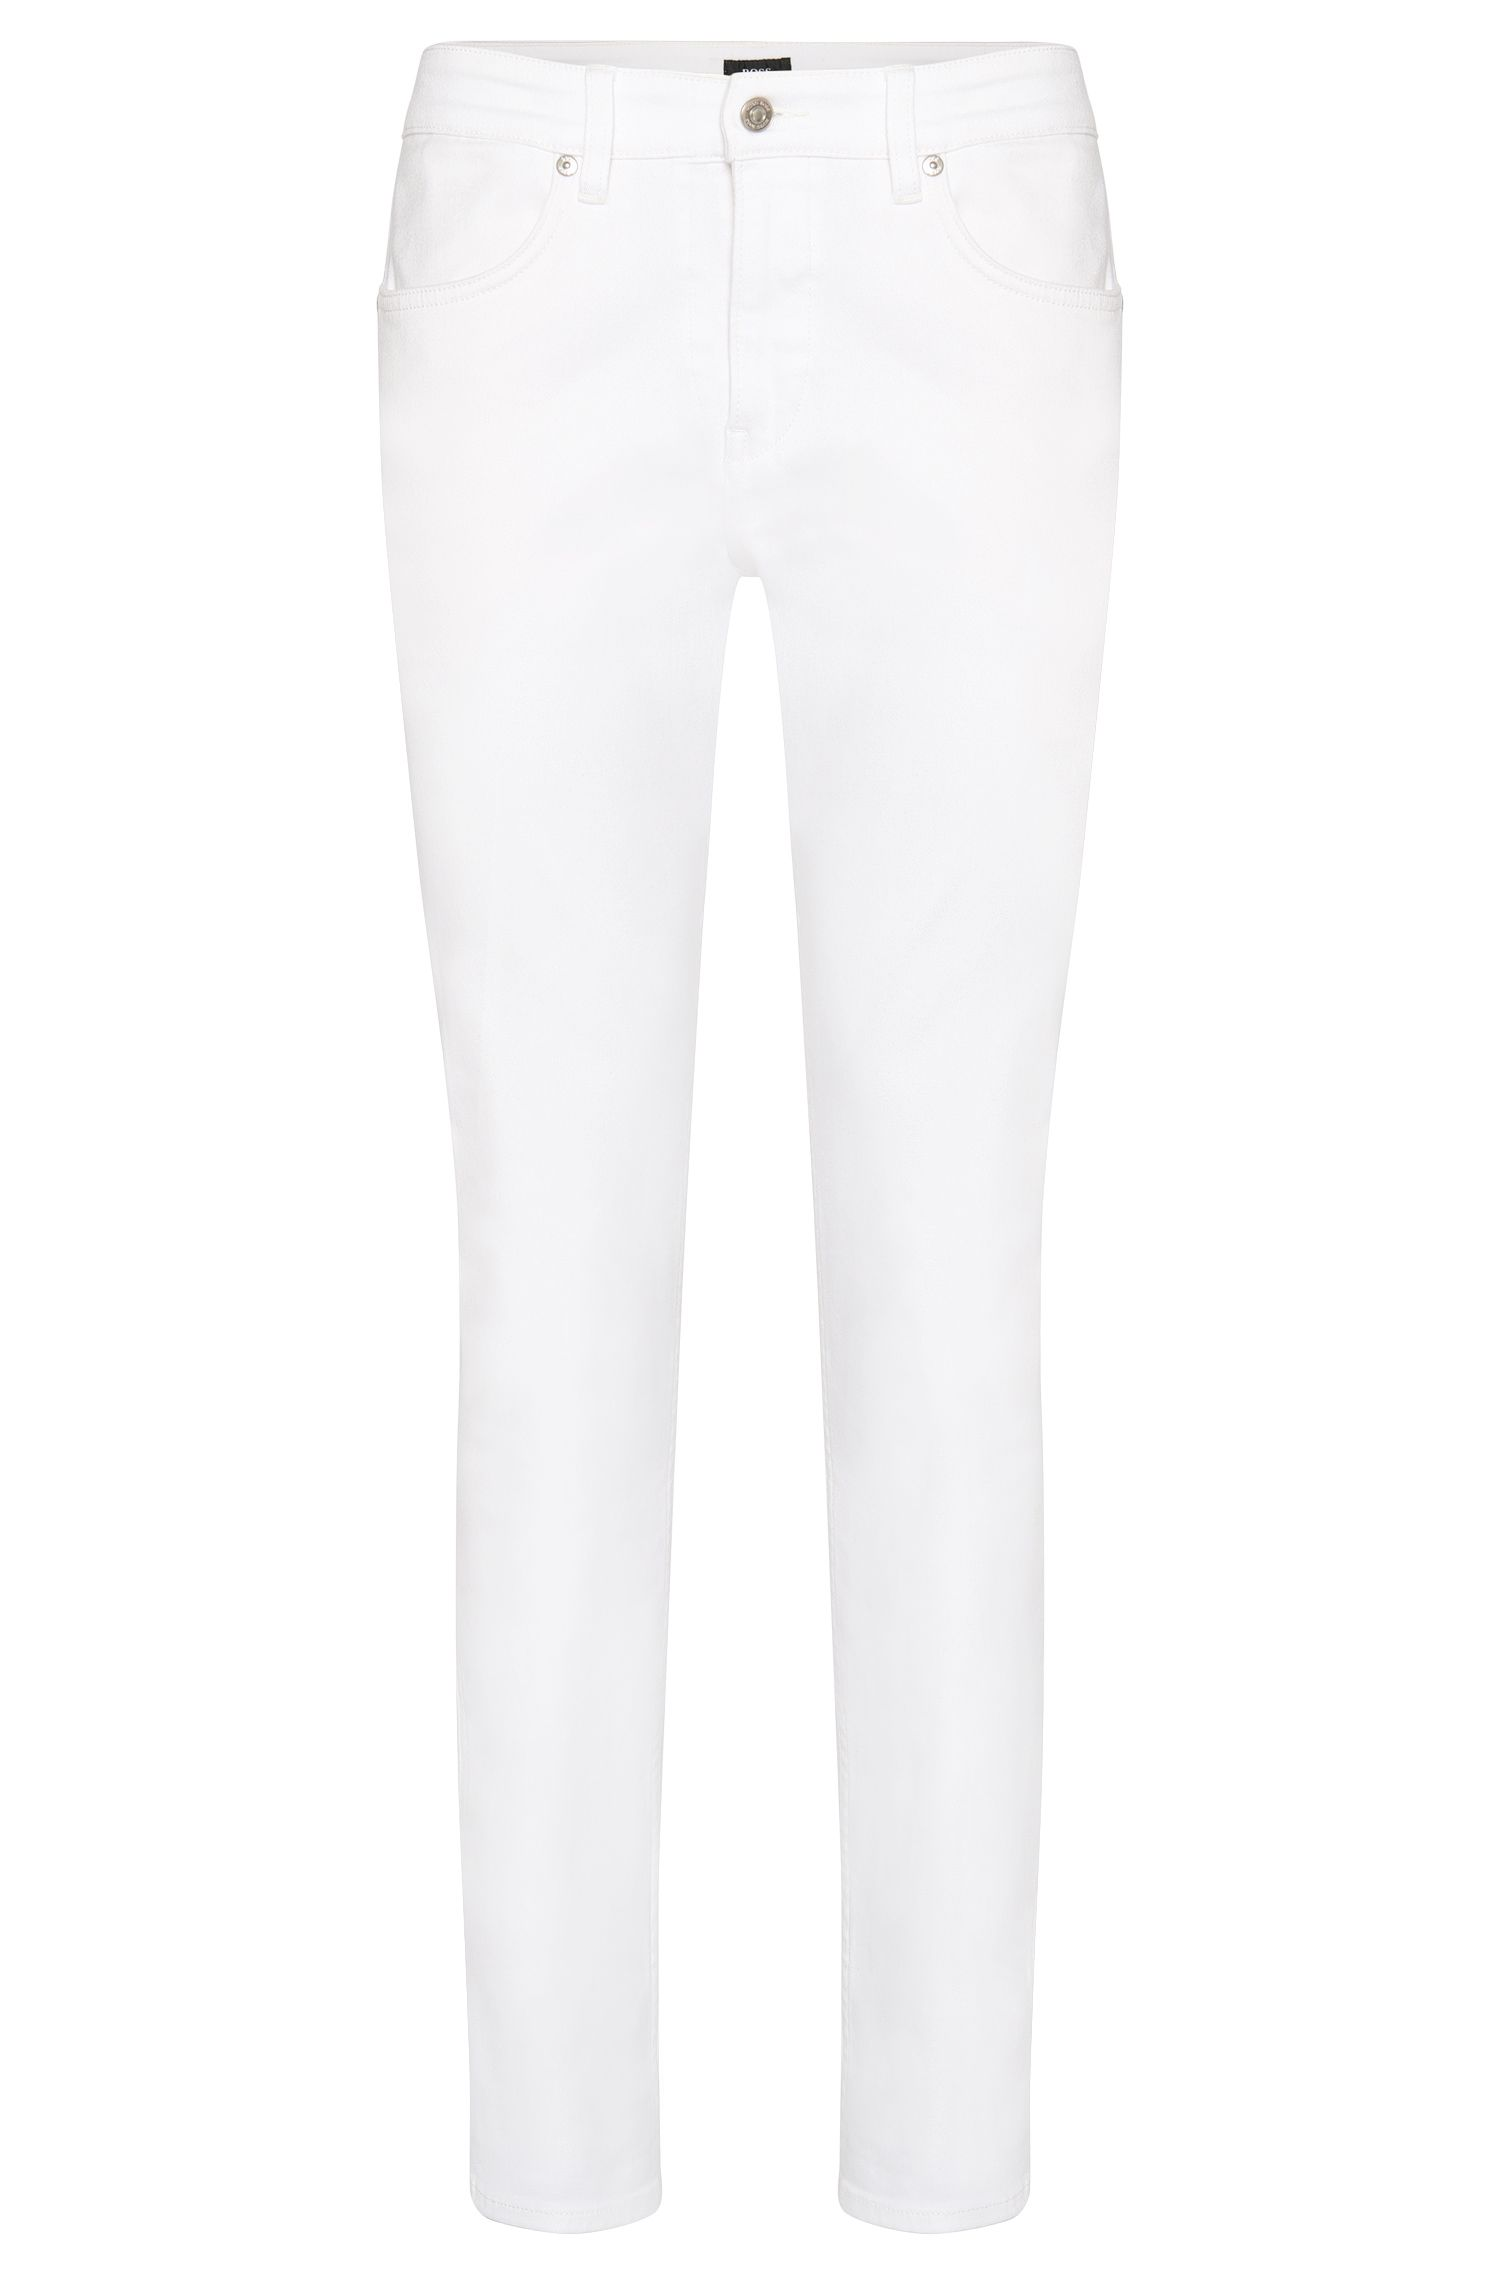 Jeans Slim Fit en coton stretch imperméable : « Delaware3 »